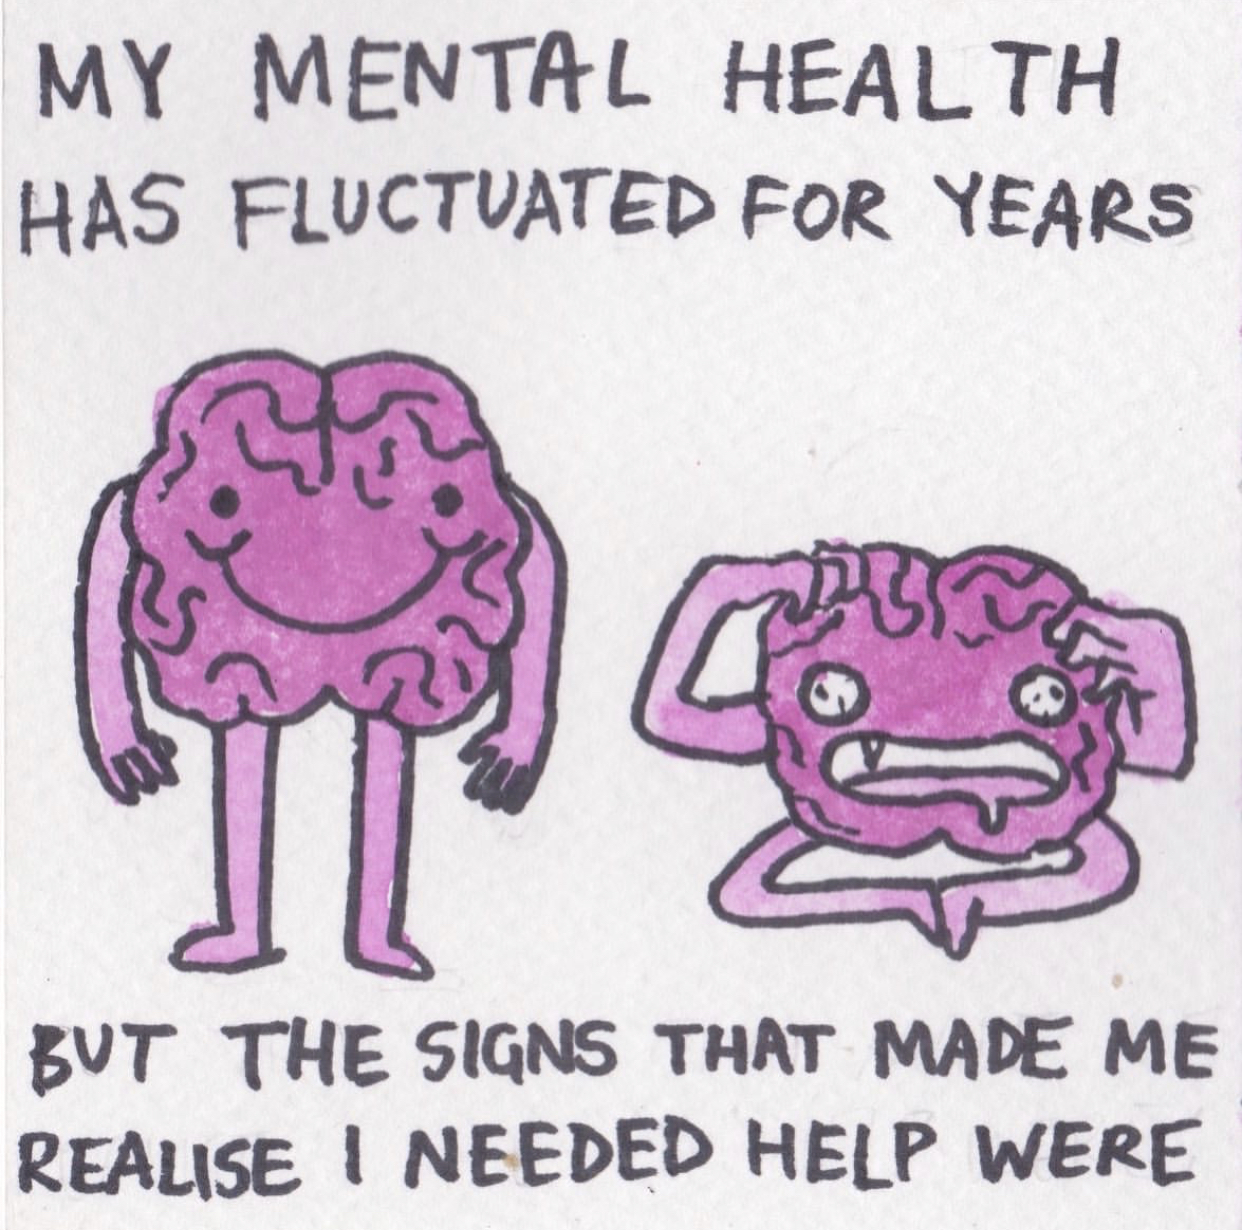 """Elyssa's illustrated comic of PTSD, drawn in ink and coloured in shades of pink and magenta watercolour paint. This image shows two cartoon brains in the centre, with writing above and below. The brain on the left looks healthy and happy, whereas the right one looks like it's melting in traumatic distress. The text on top reads, """"My mental health has fluctuated for years"""", and on the bottom says, """"but the signs that made me realise I needed help were…"""""""